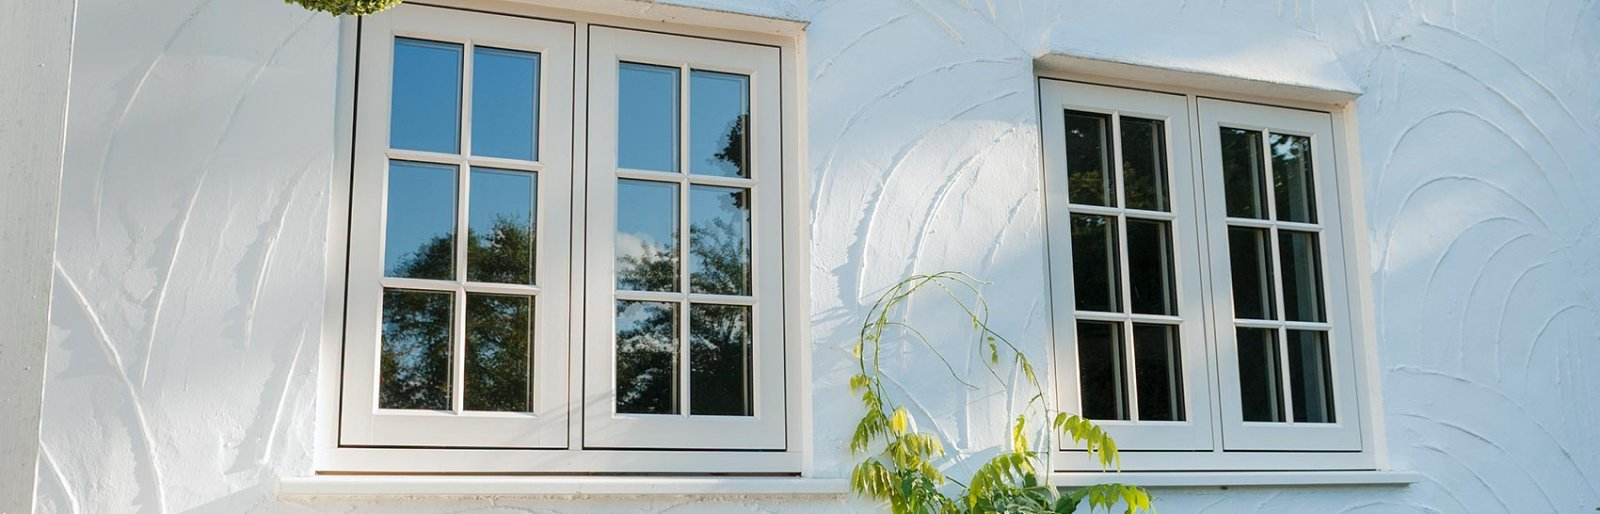 White double glazed windows with flush sash for traditional appearance